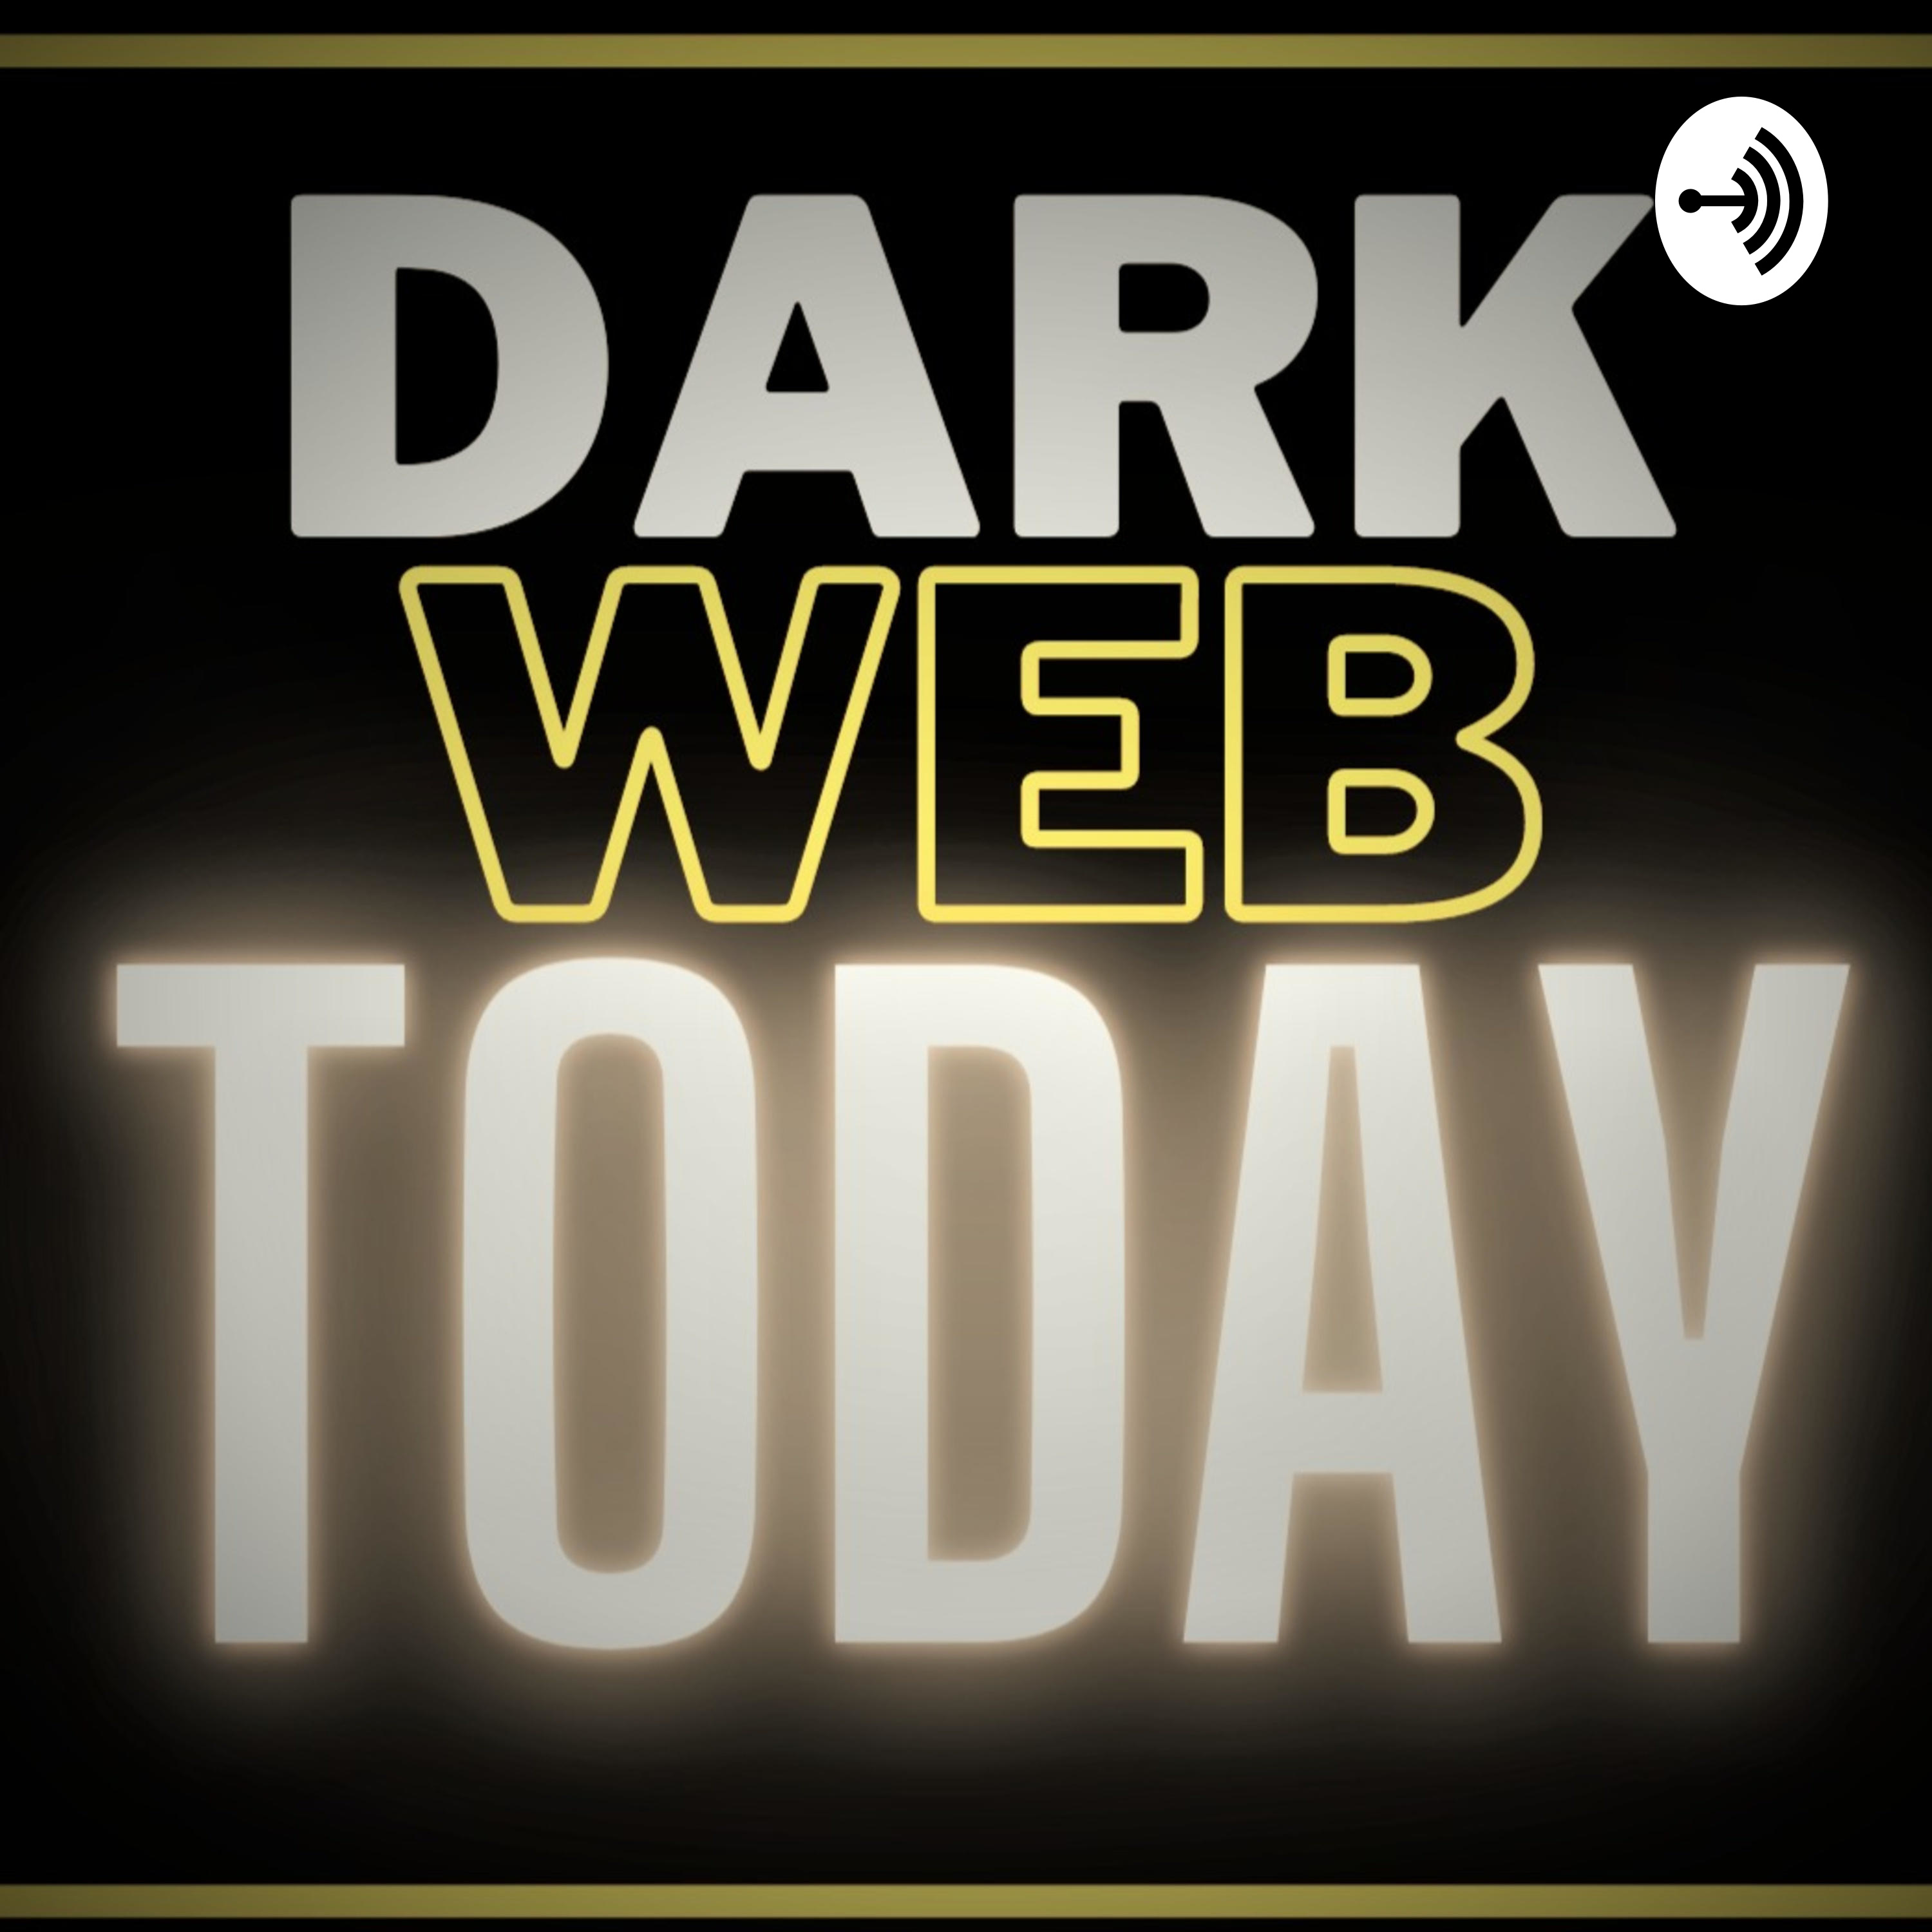 DarkWeb Today - By the first hacker that served time in prison in #Uruguay for hacking @ADanielHill